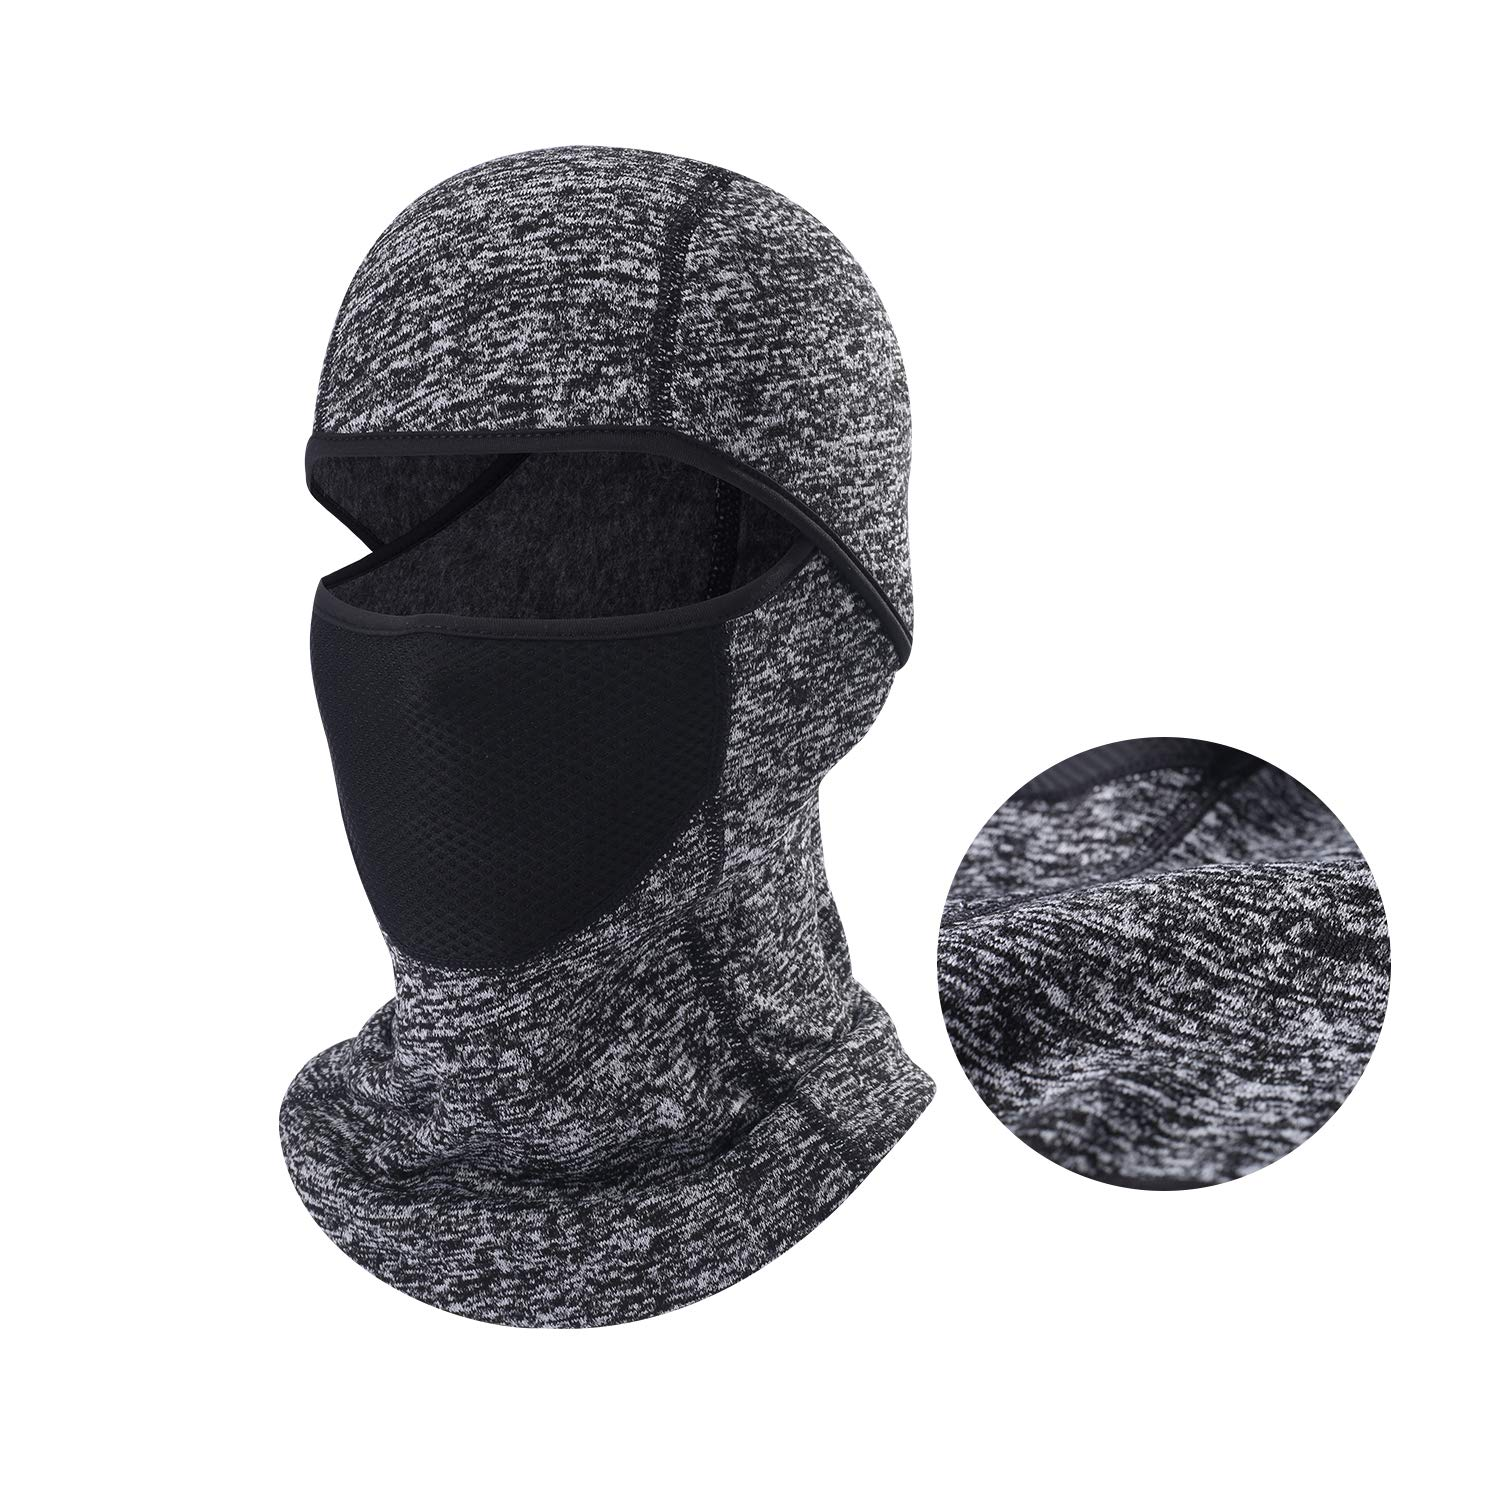 Balaclava Ski Mask Windproof and Cold Protection Outdoor Motorcycle Hood Breathable Full Face Mask for Men